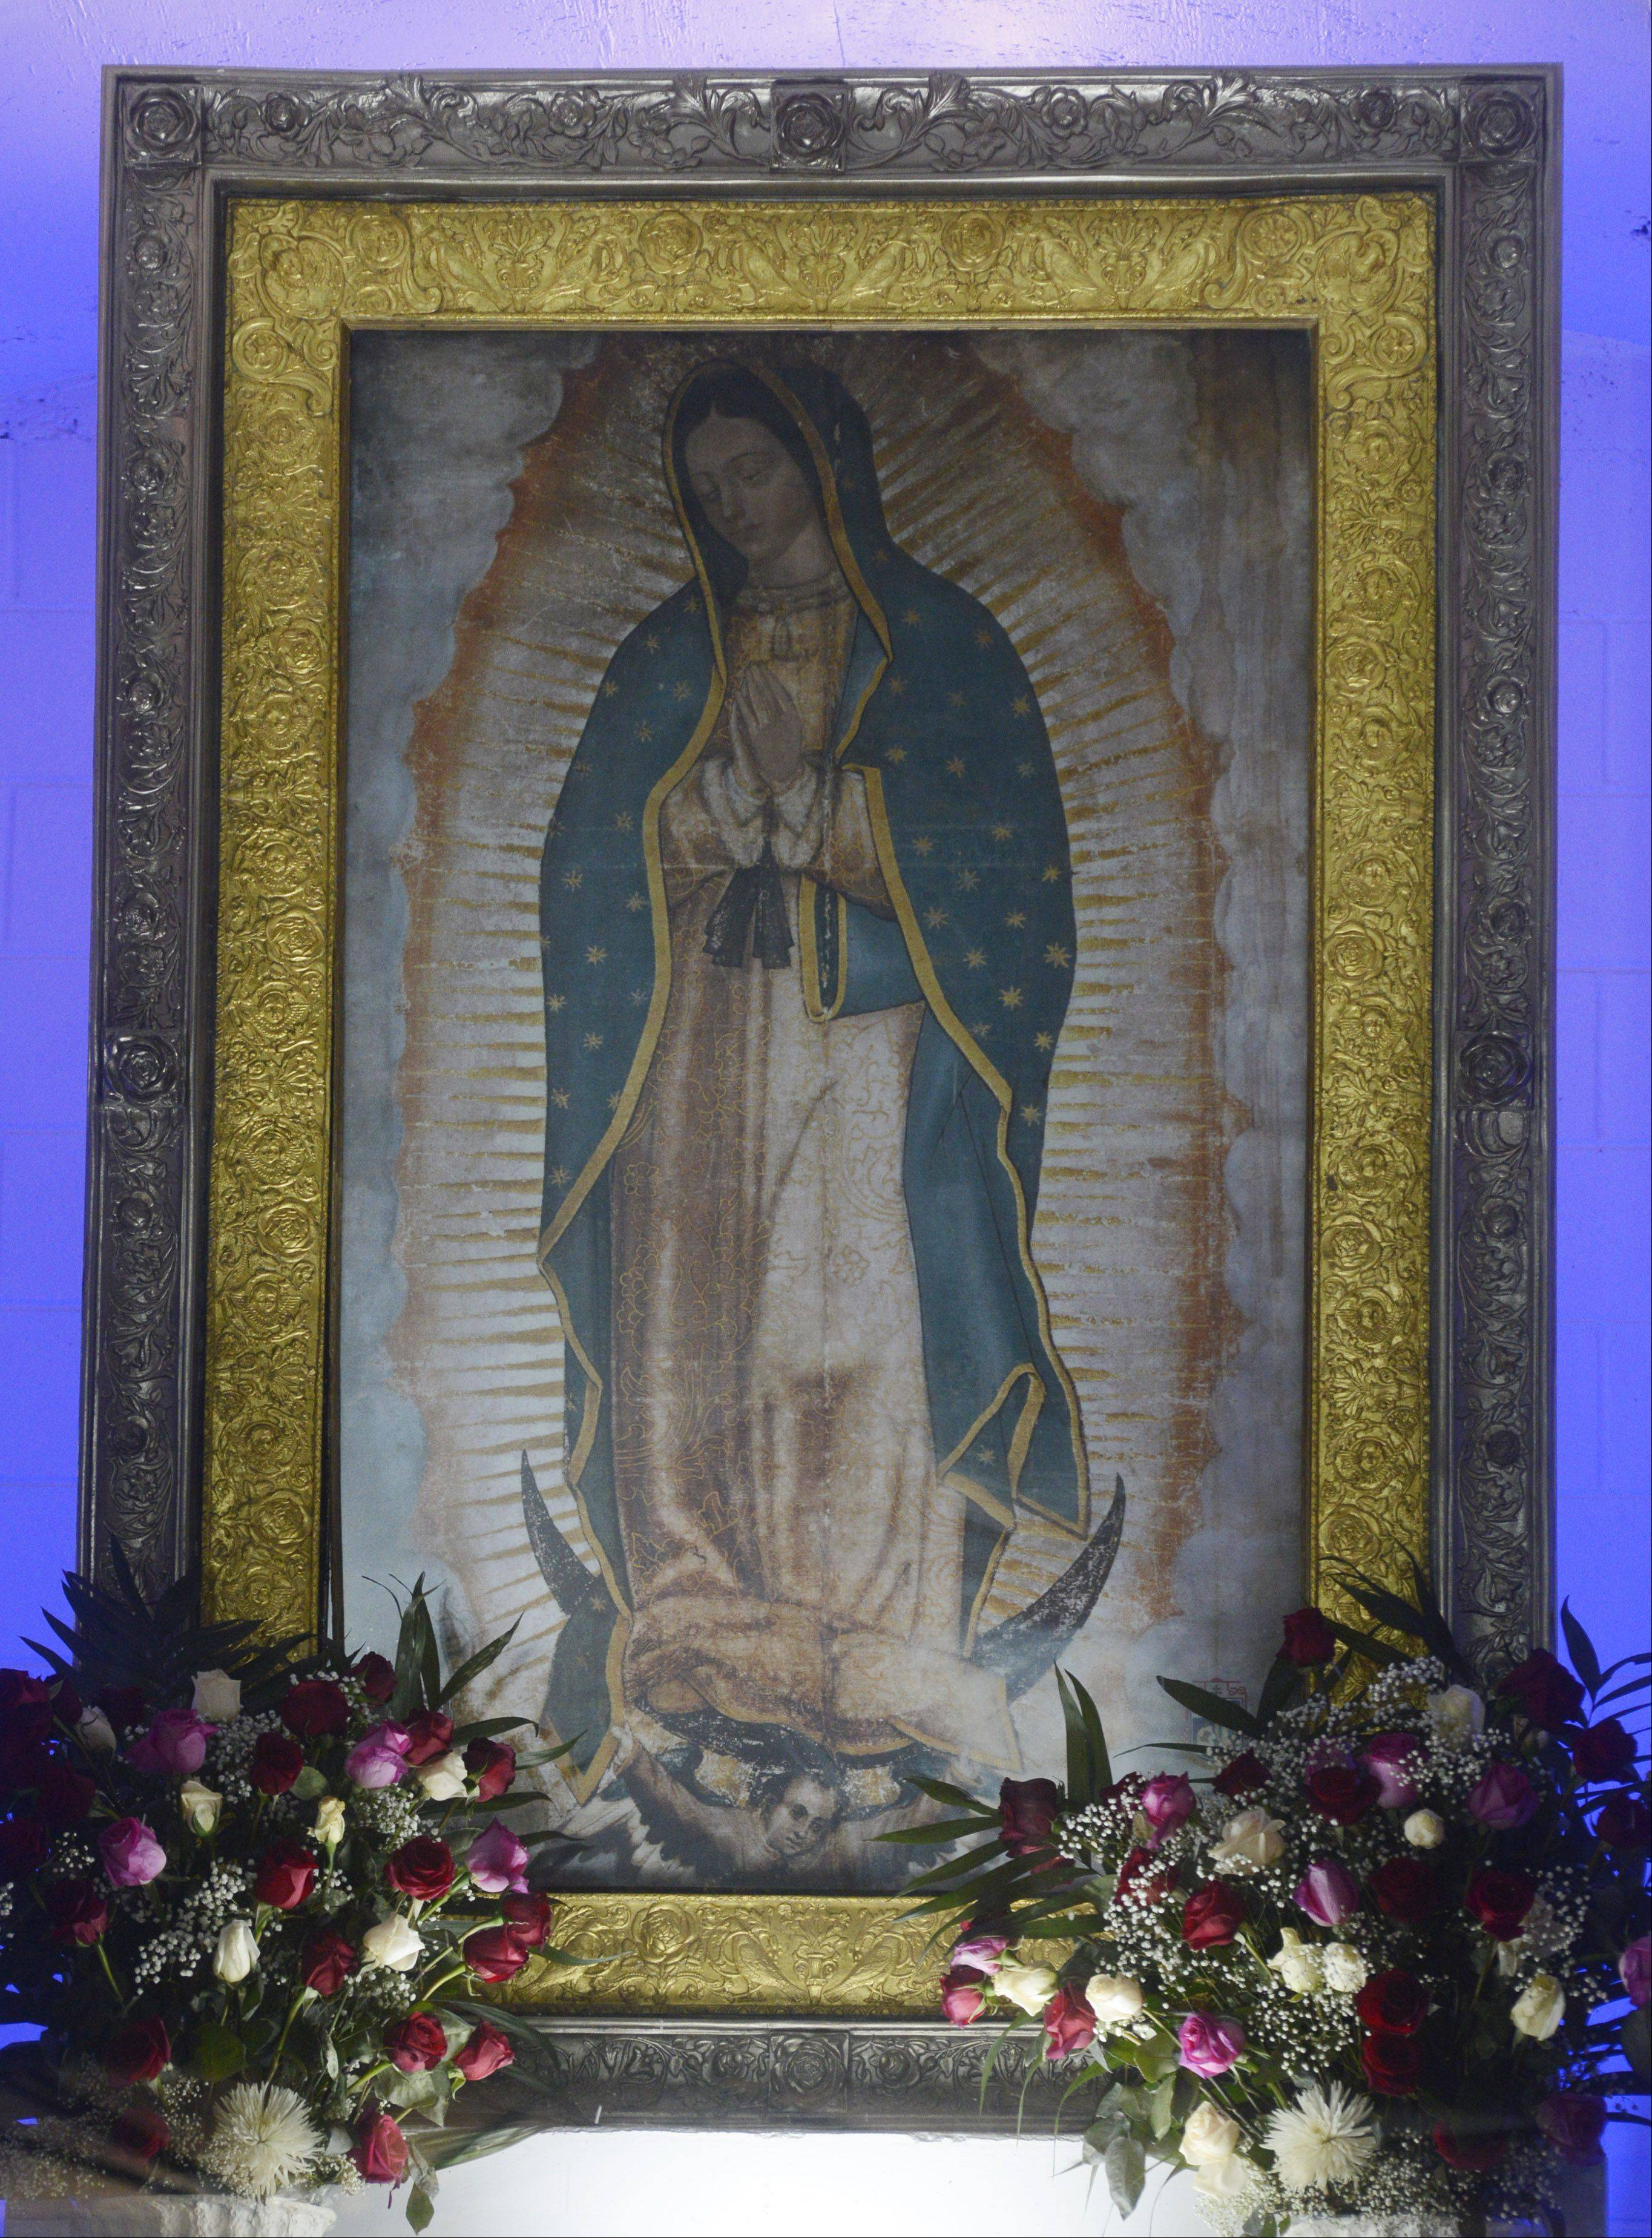 JOE LEWNARD/jlewnard@dailyherald.comImage of the Blessed Mother at the Shrine of Our Lady of Guadalupe at Maryville in Des Plaines.